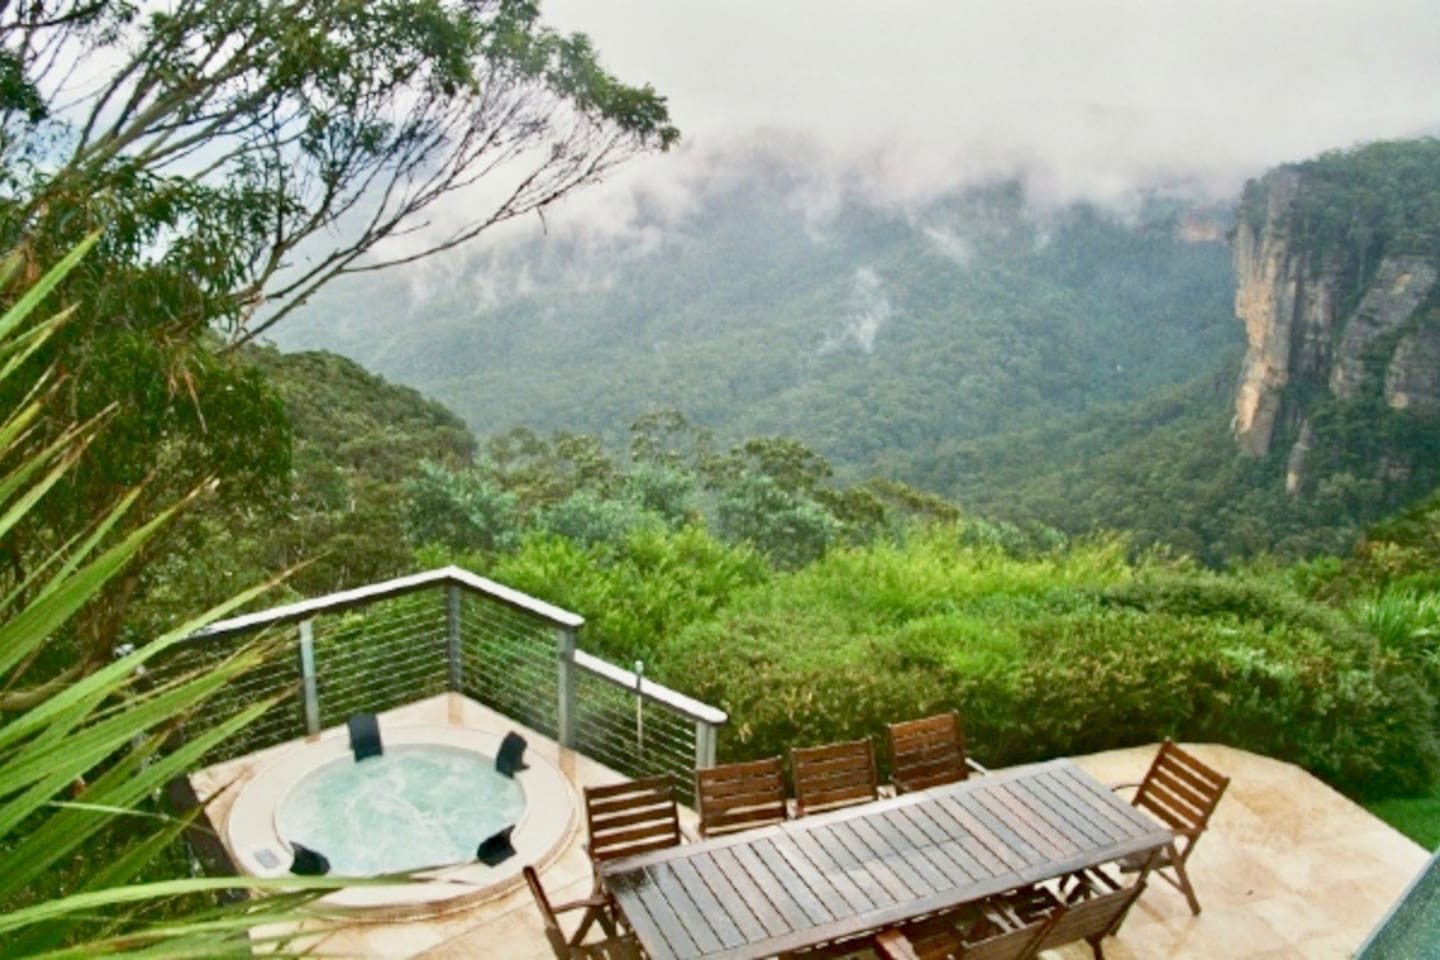 Mystical mountain views from the jacuzzi